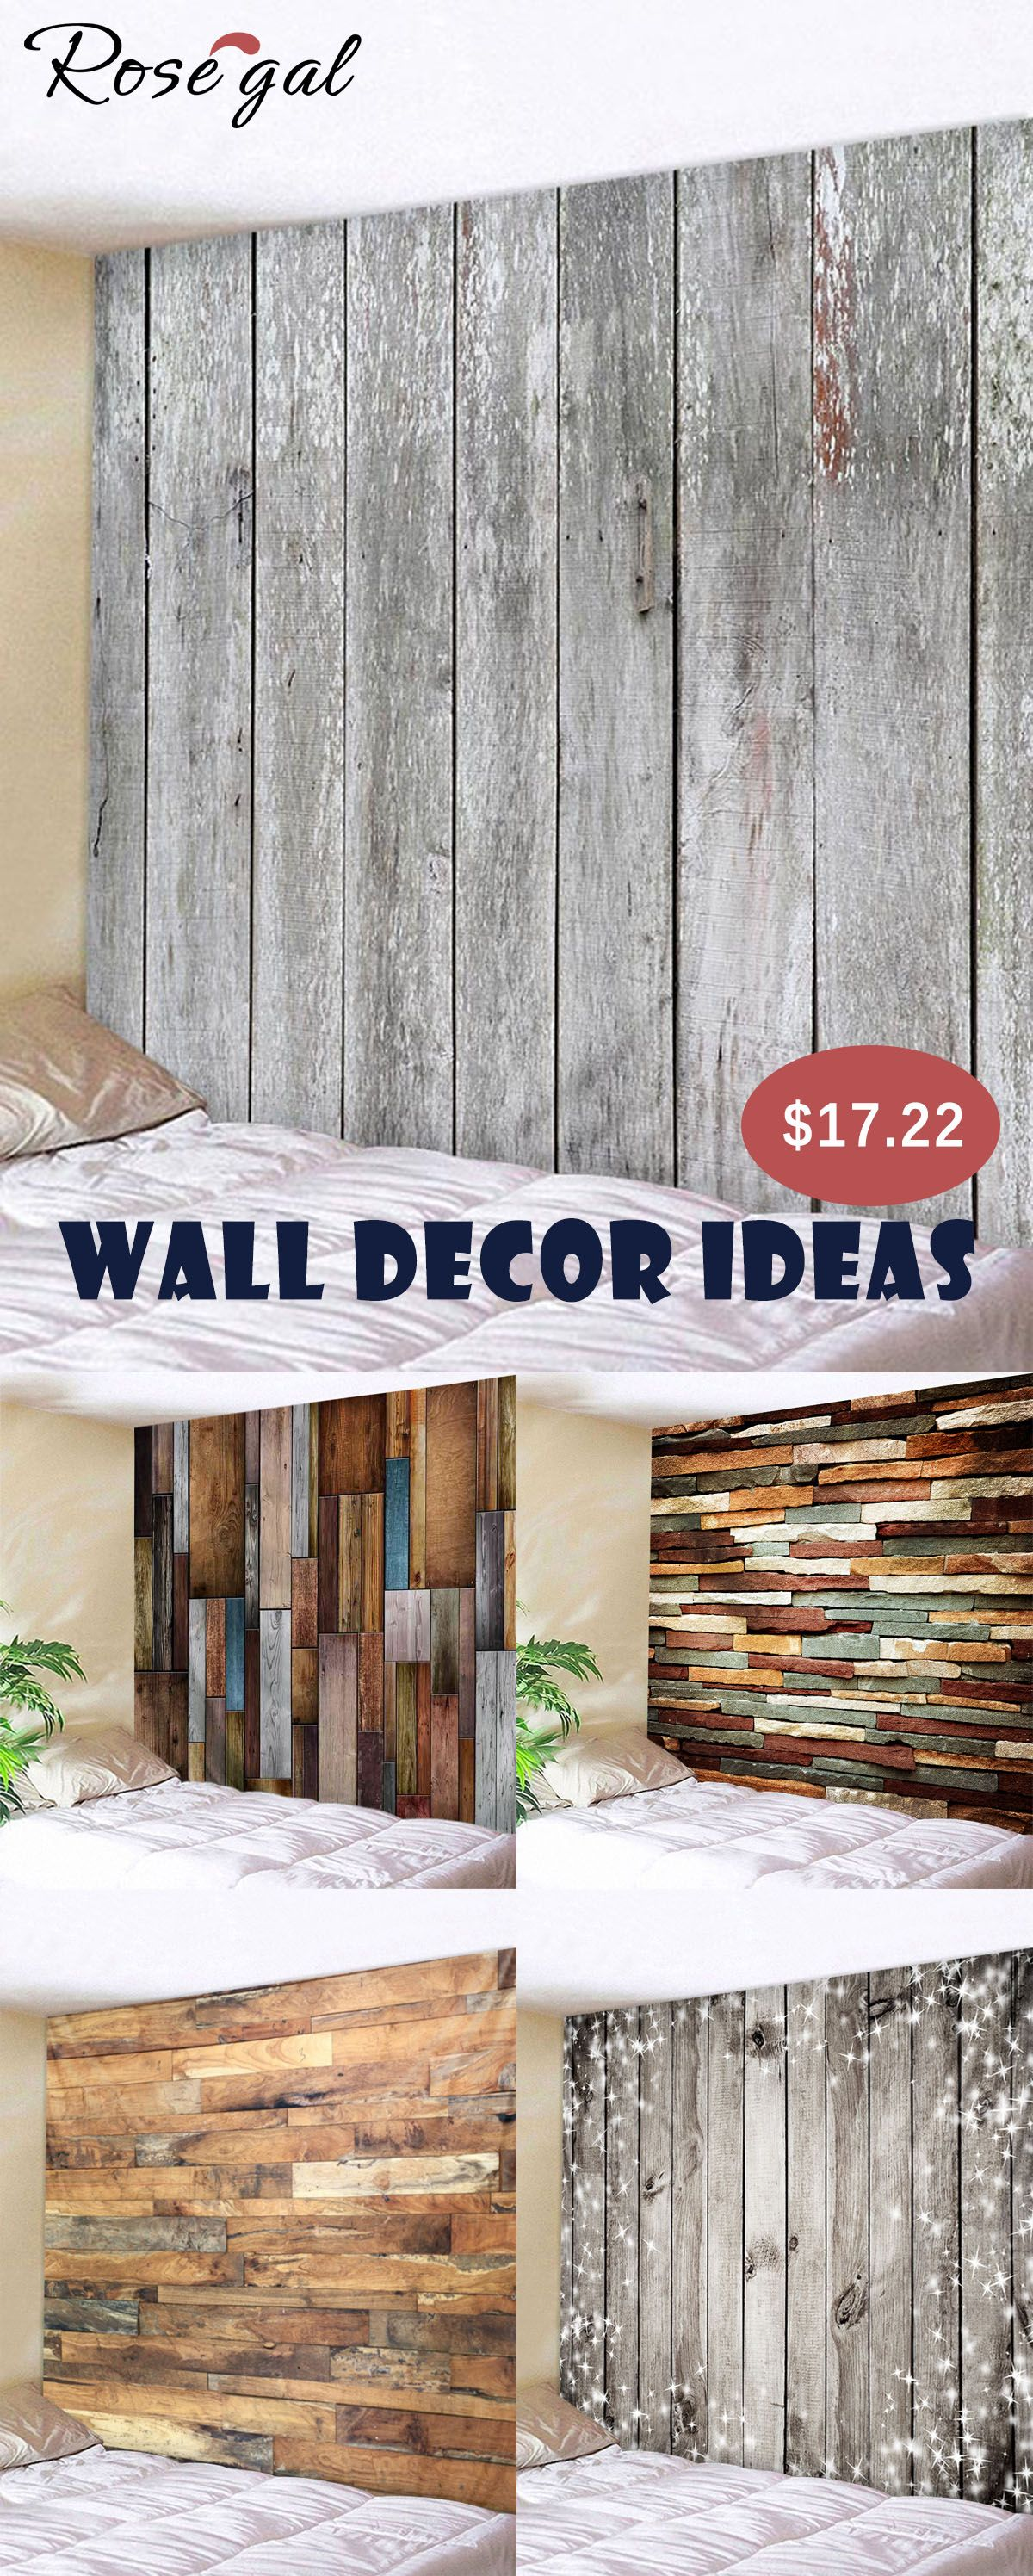 Free Shipping Over 45 Up To 75 Off Roseagl Home Decor Wood Wall